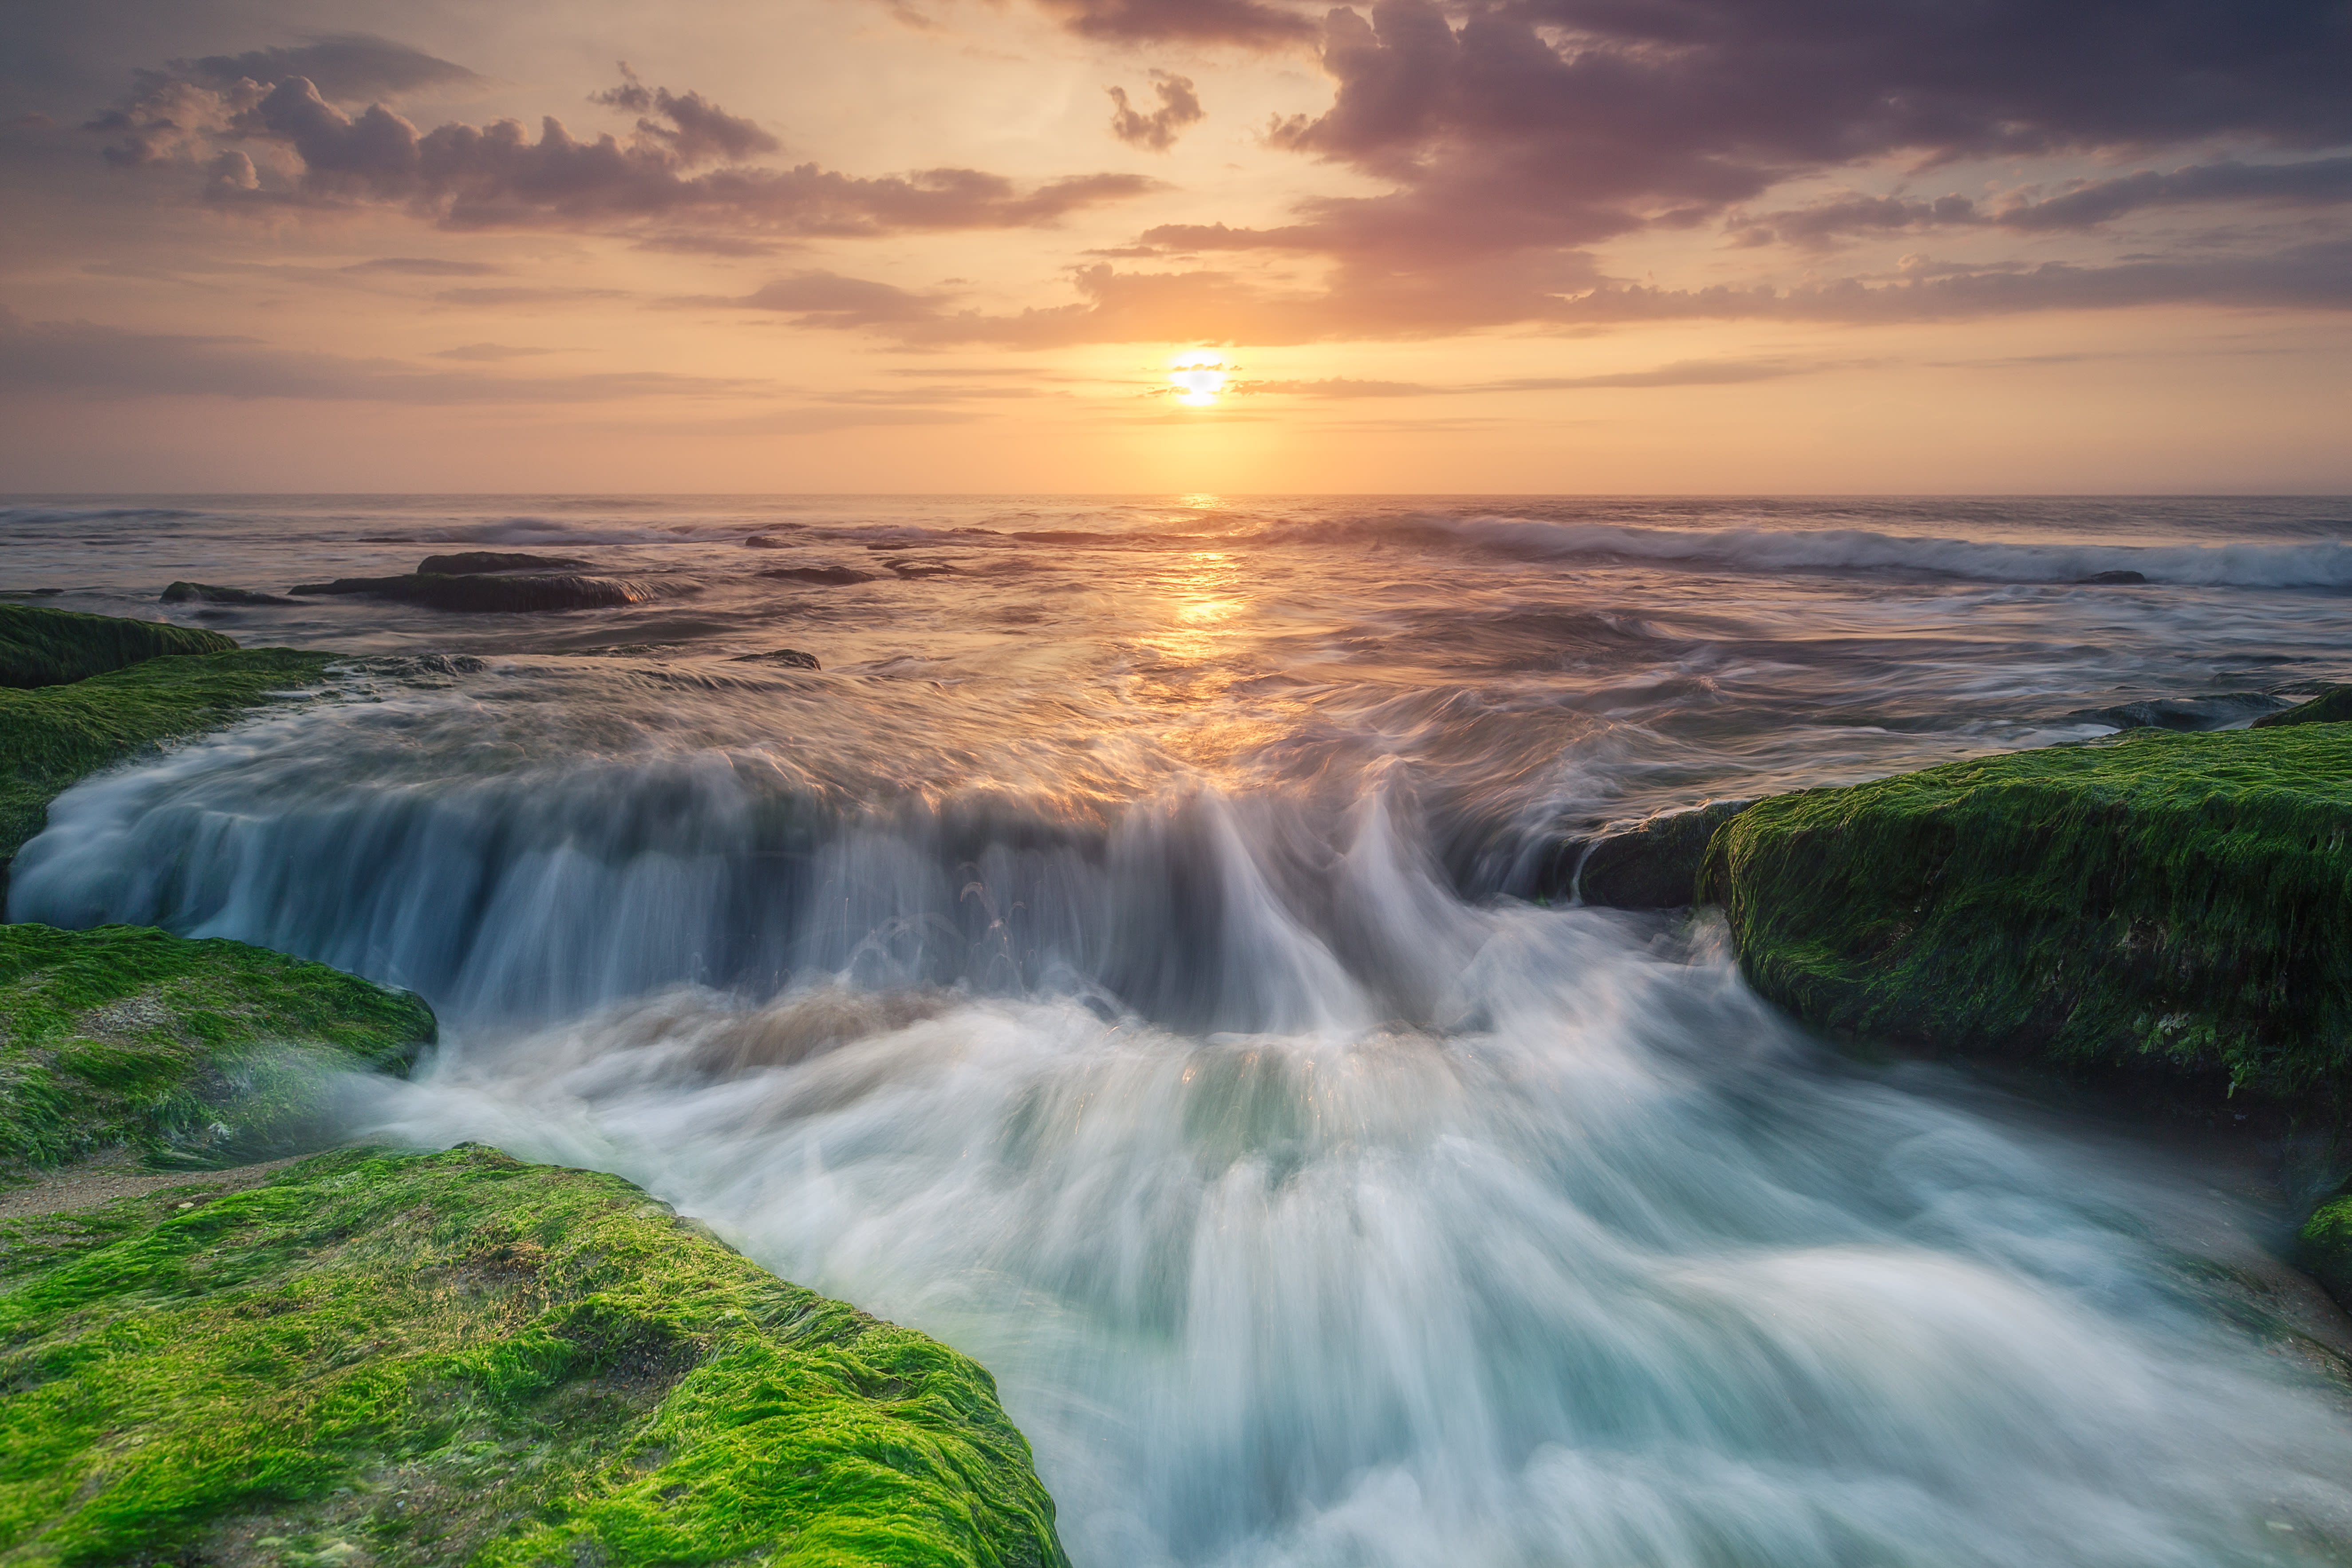 Water Flowing Over Coquina Rocks at Sunset